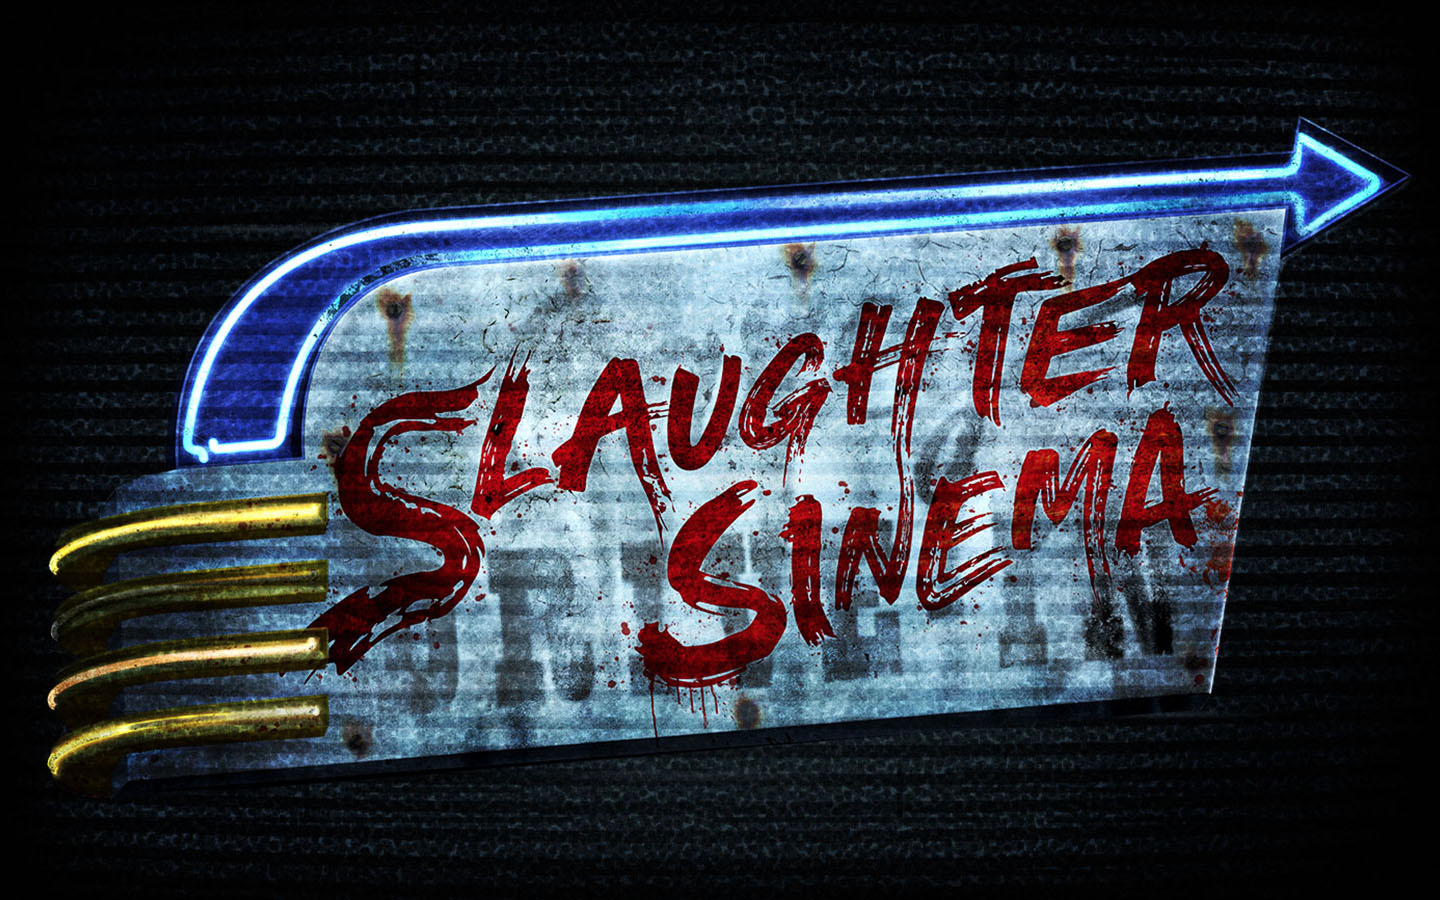 Slaughter Sinema announced for Halloween Horror Nights 2018